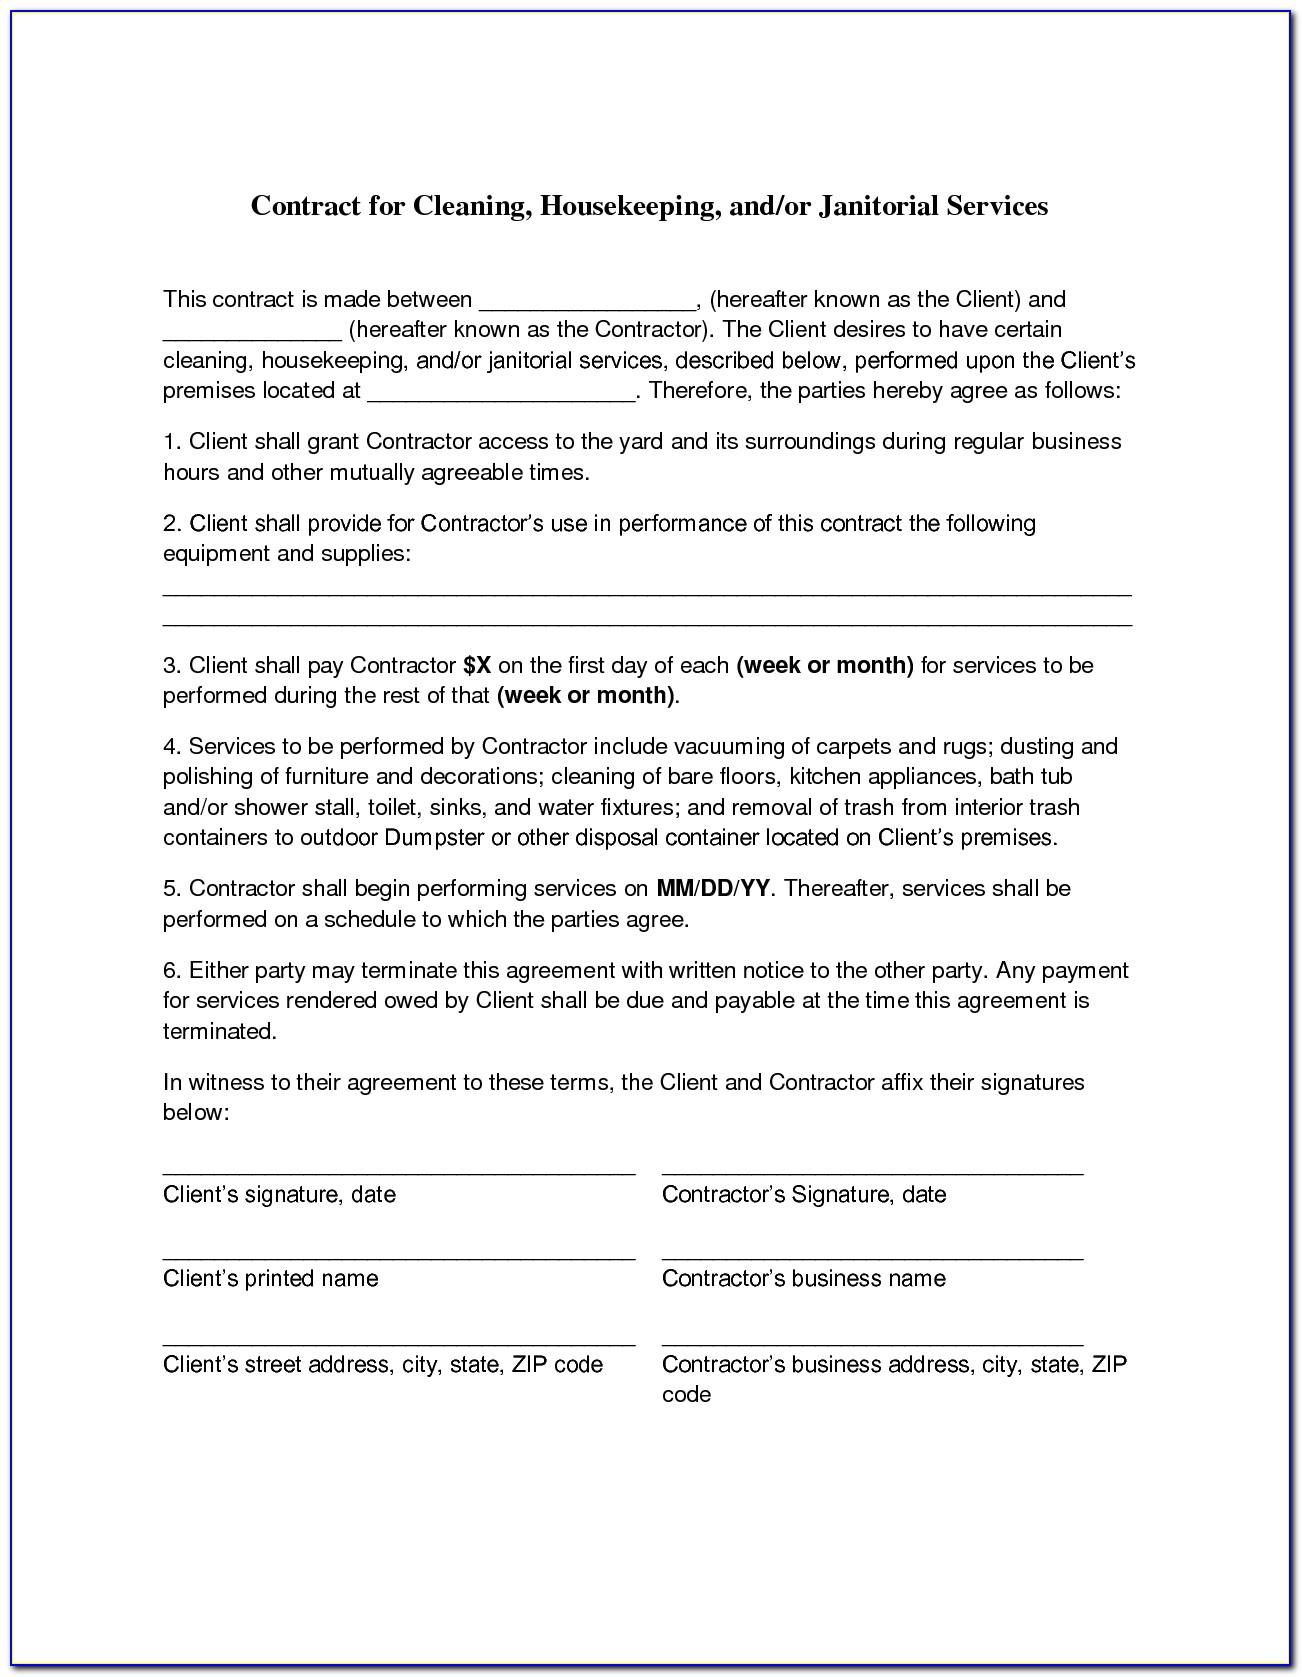 Self Employed Driver Contract Template